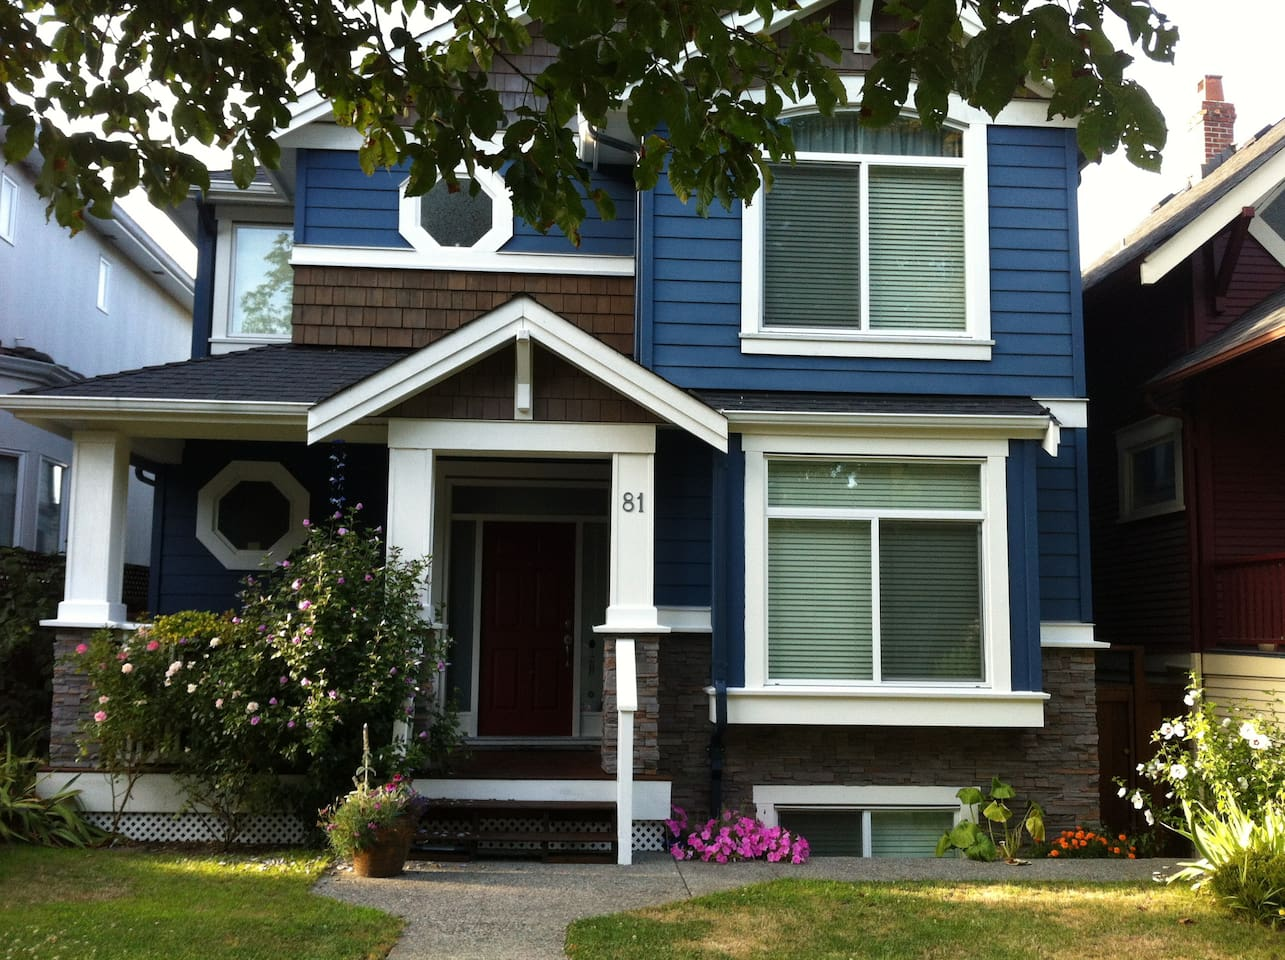 Newer craftsman style home on a quiet tree lined street.